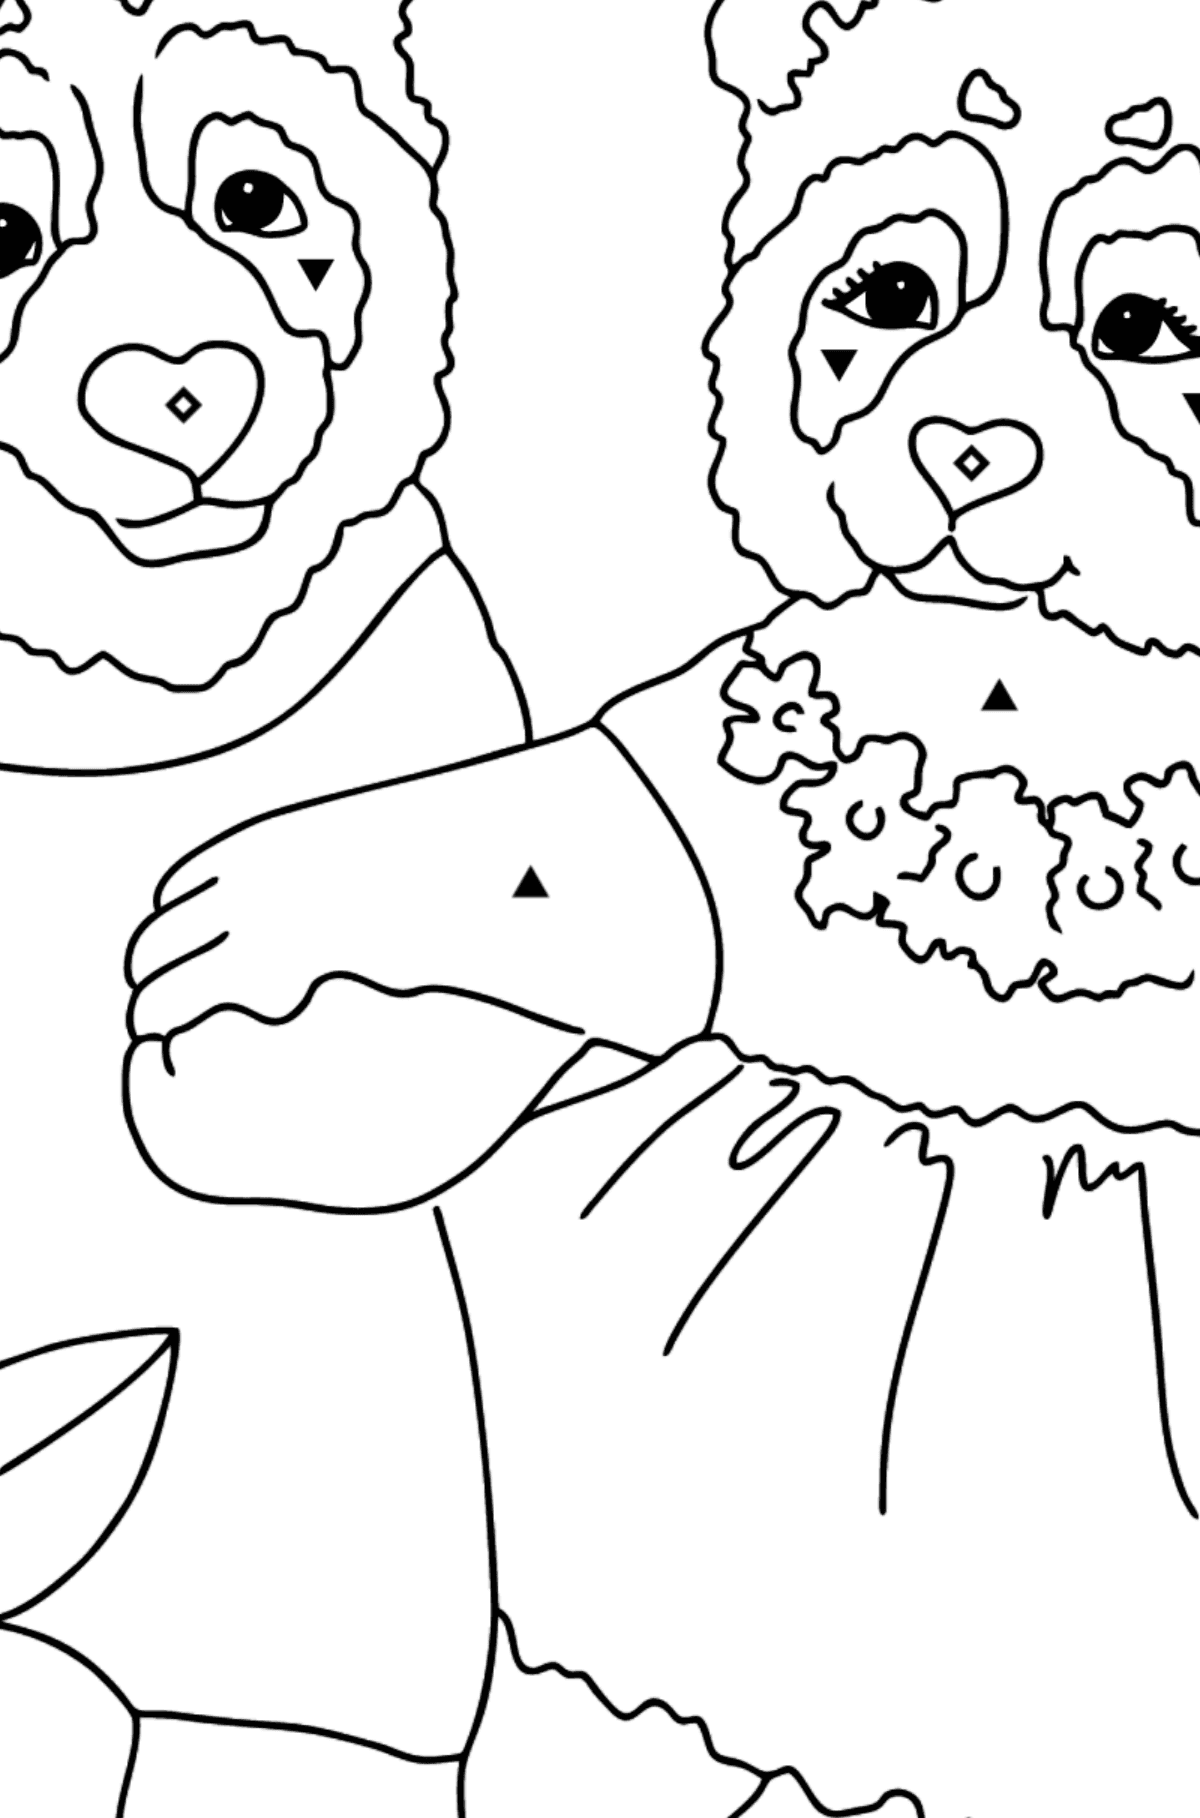 Coloring Page - Pandas Taking a Walk - Coloring by Symbols for Kids